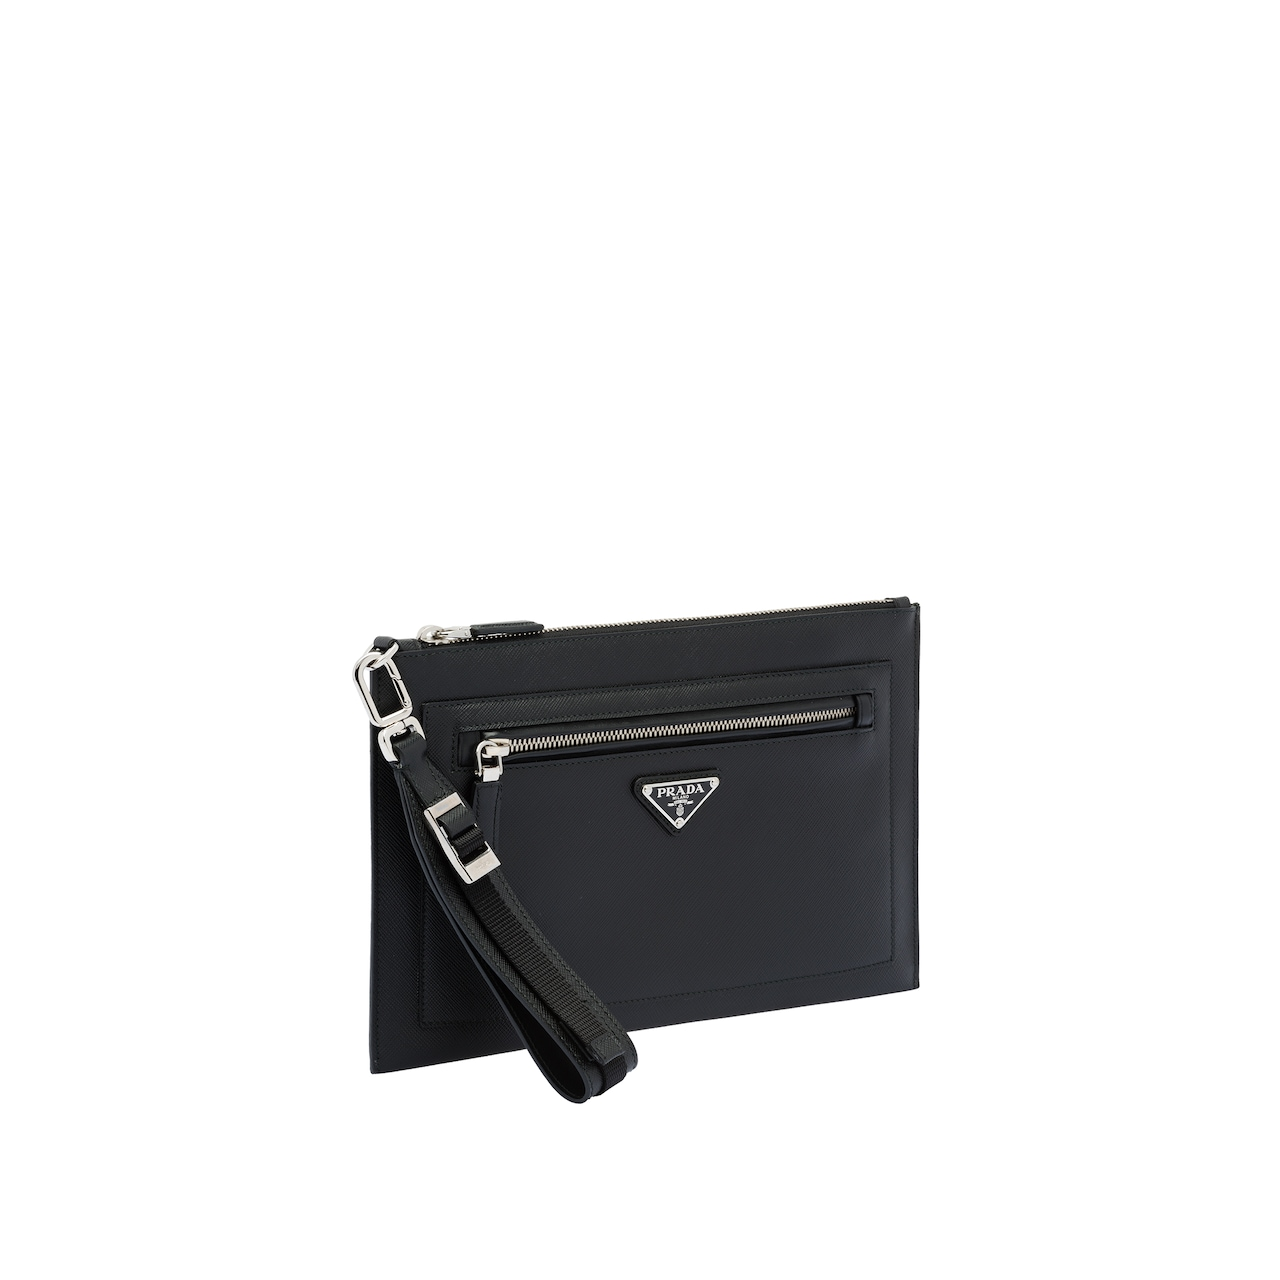 Saffiano leather pouch 4